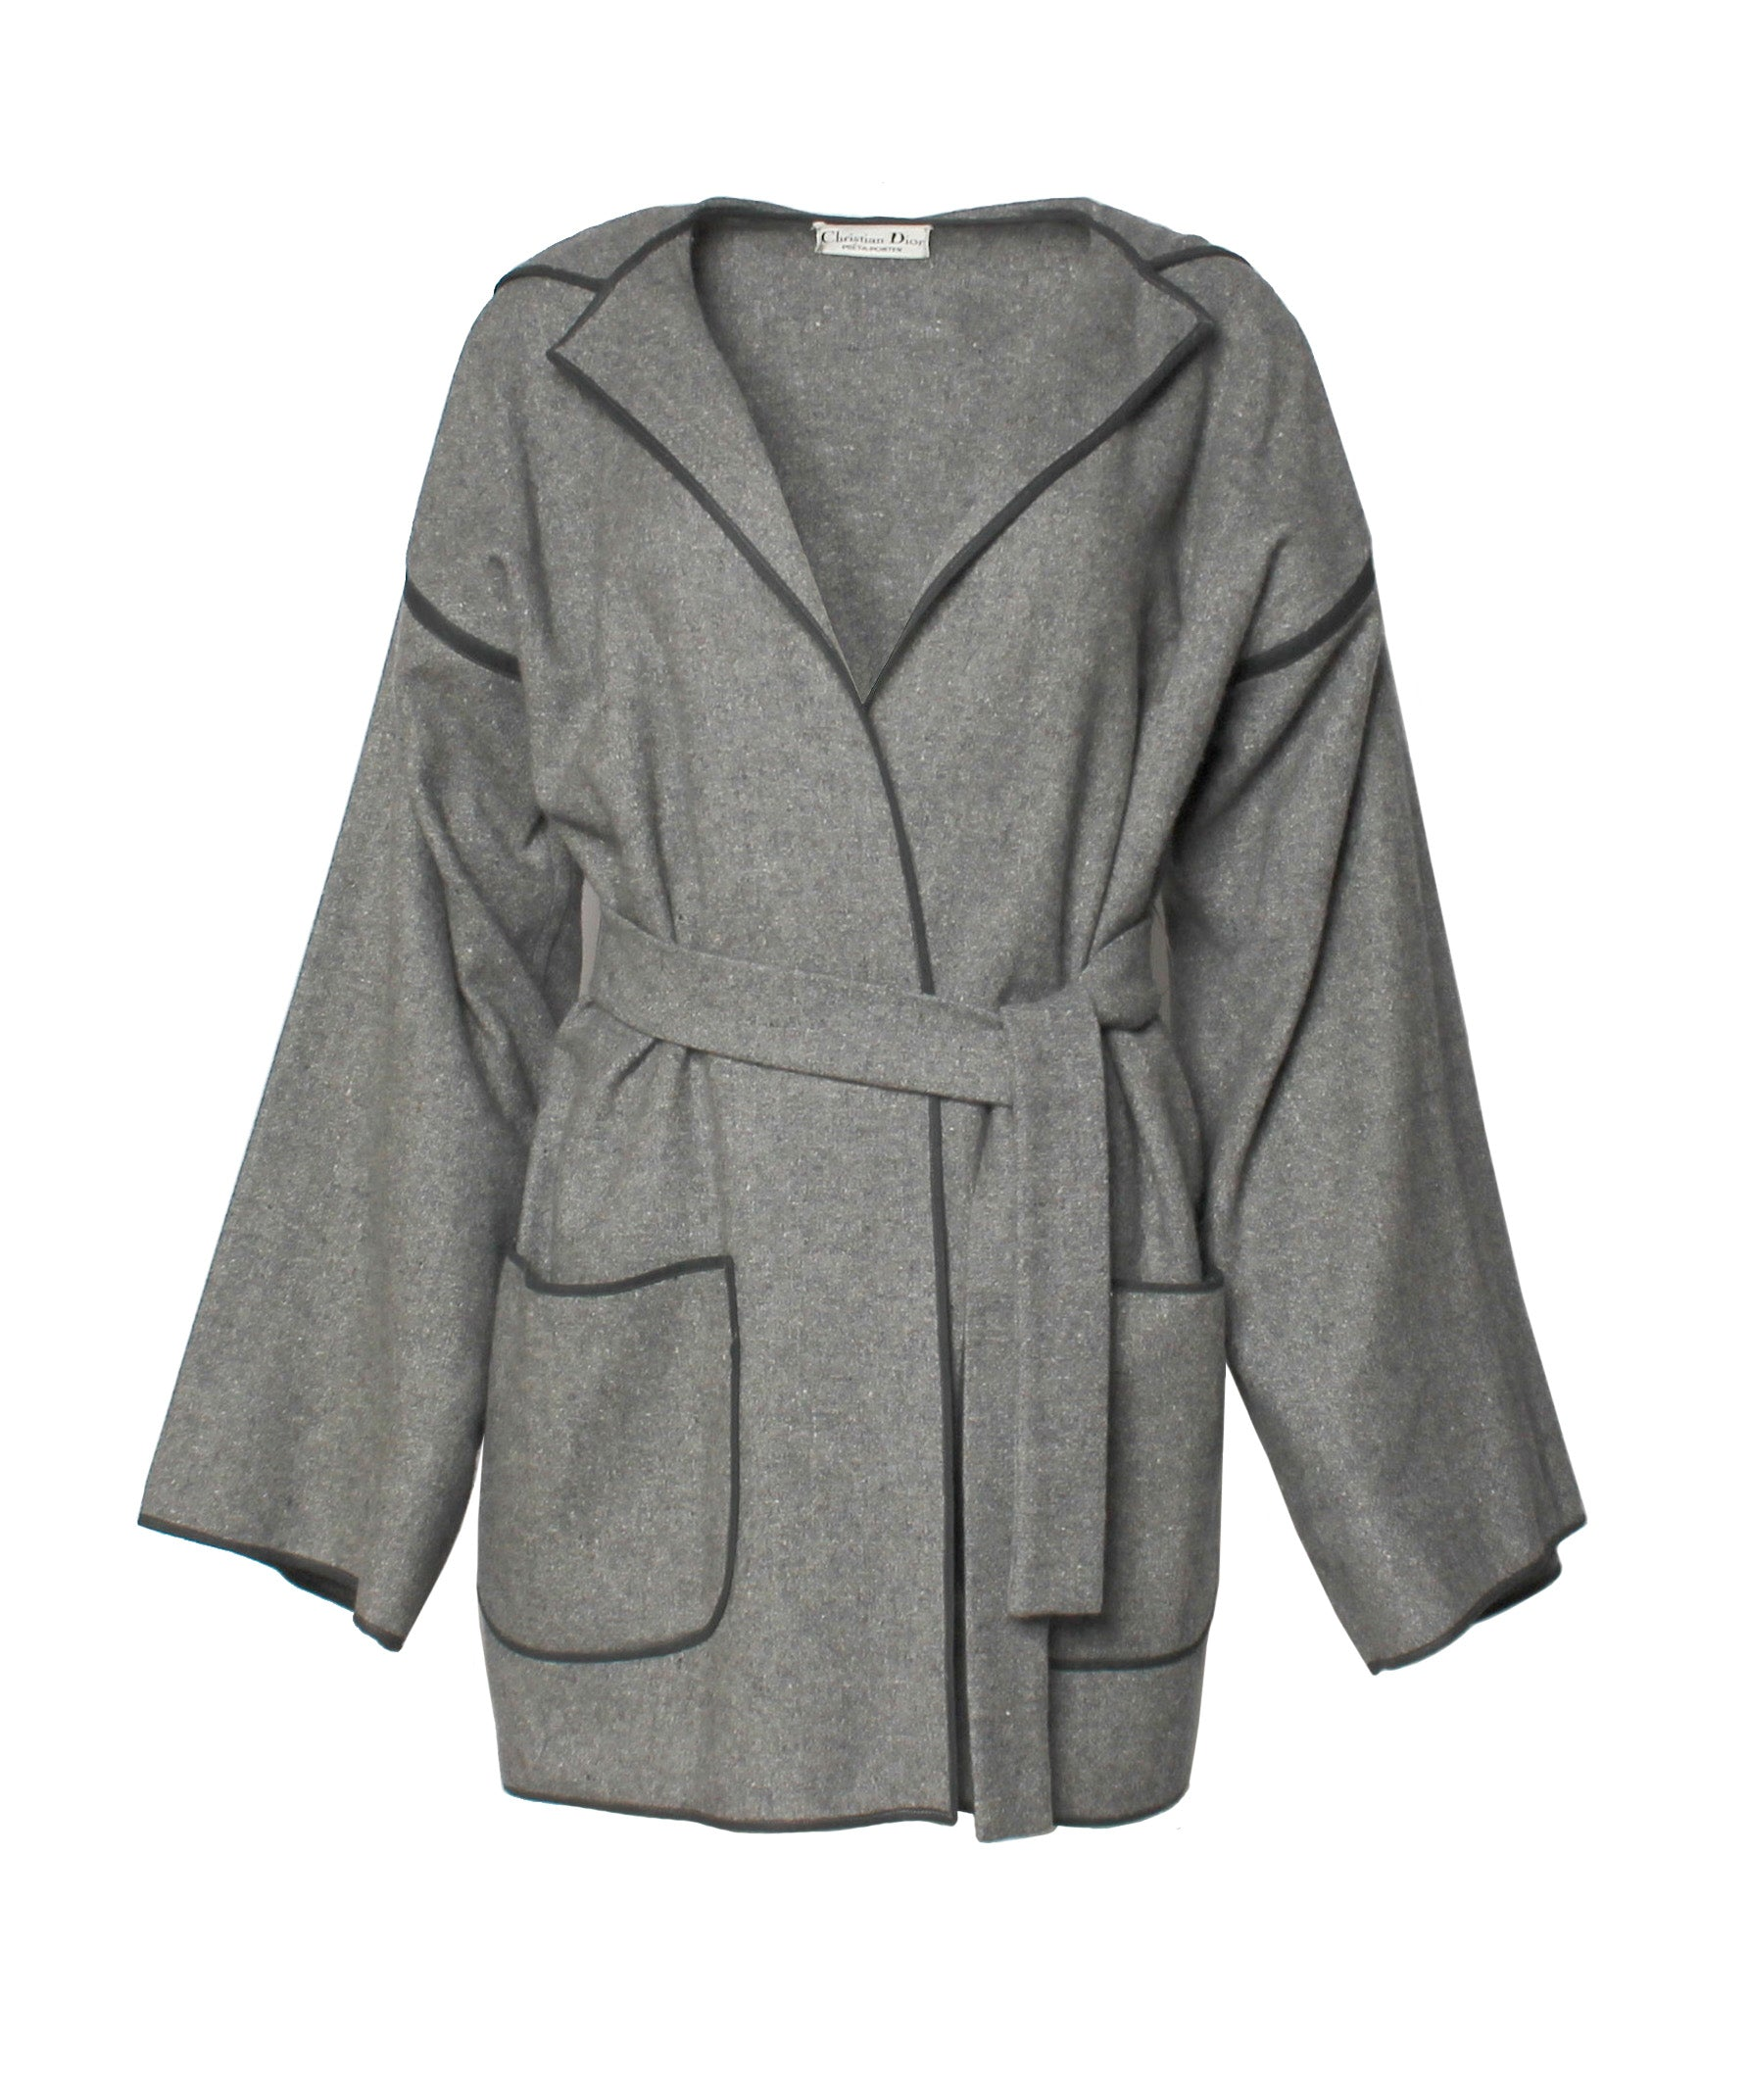 Christian Dior Grey Felted Wool Jacket with Hood and Tie Belt - C.Madeleine's